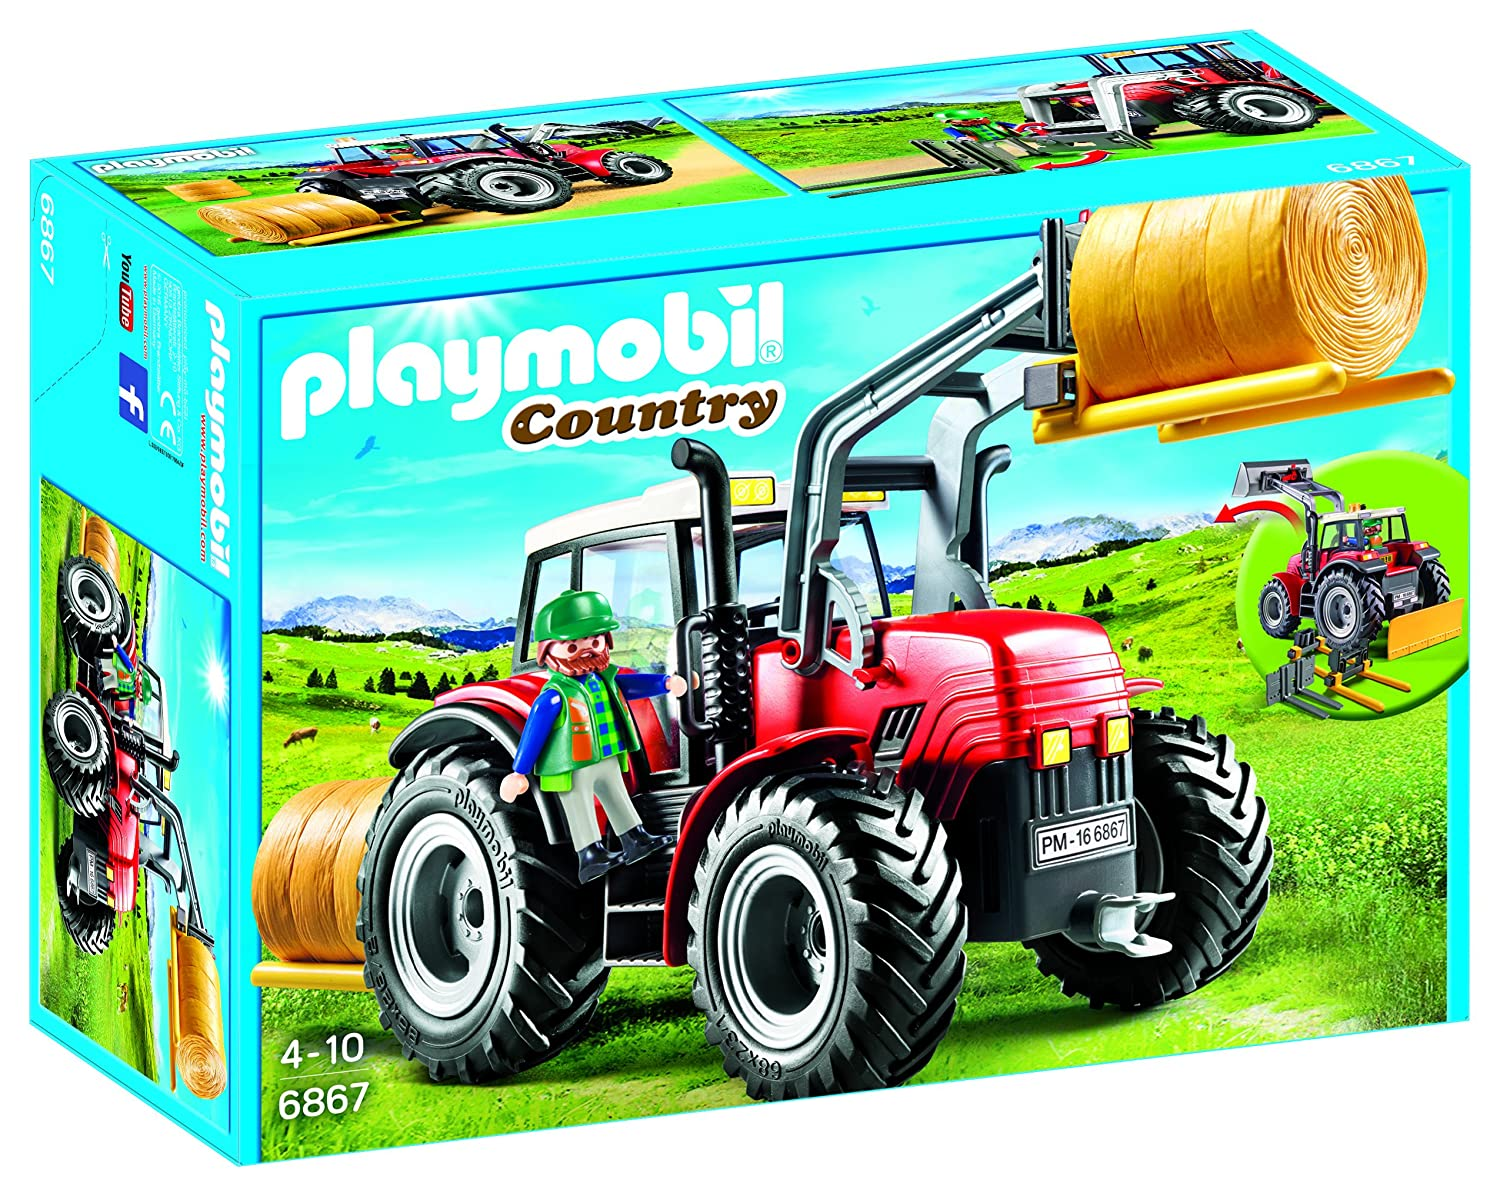 Playmobil Country Ssss